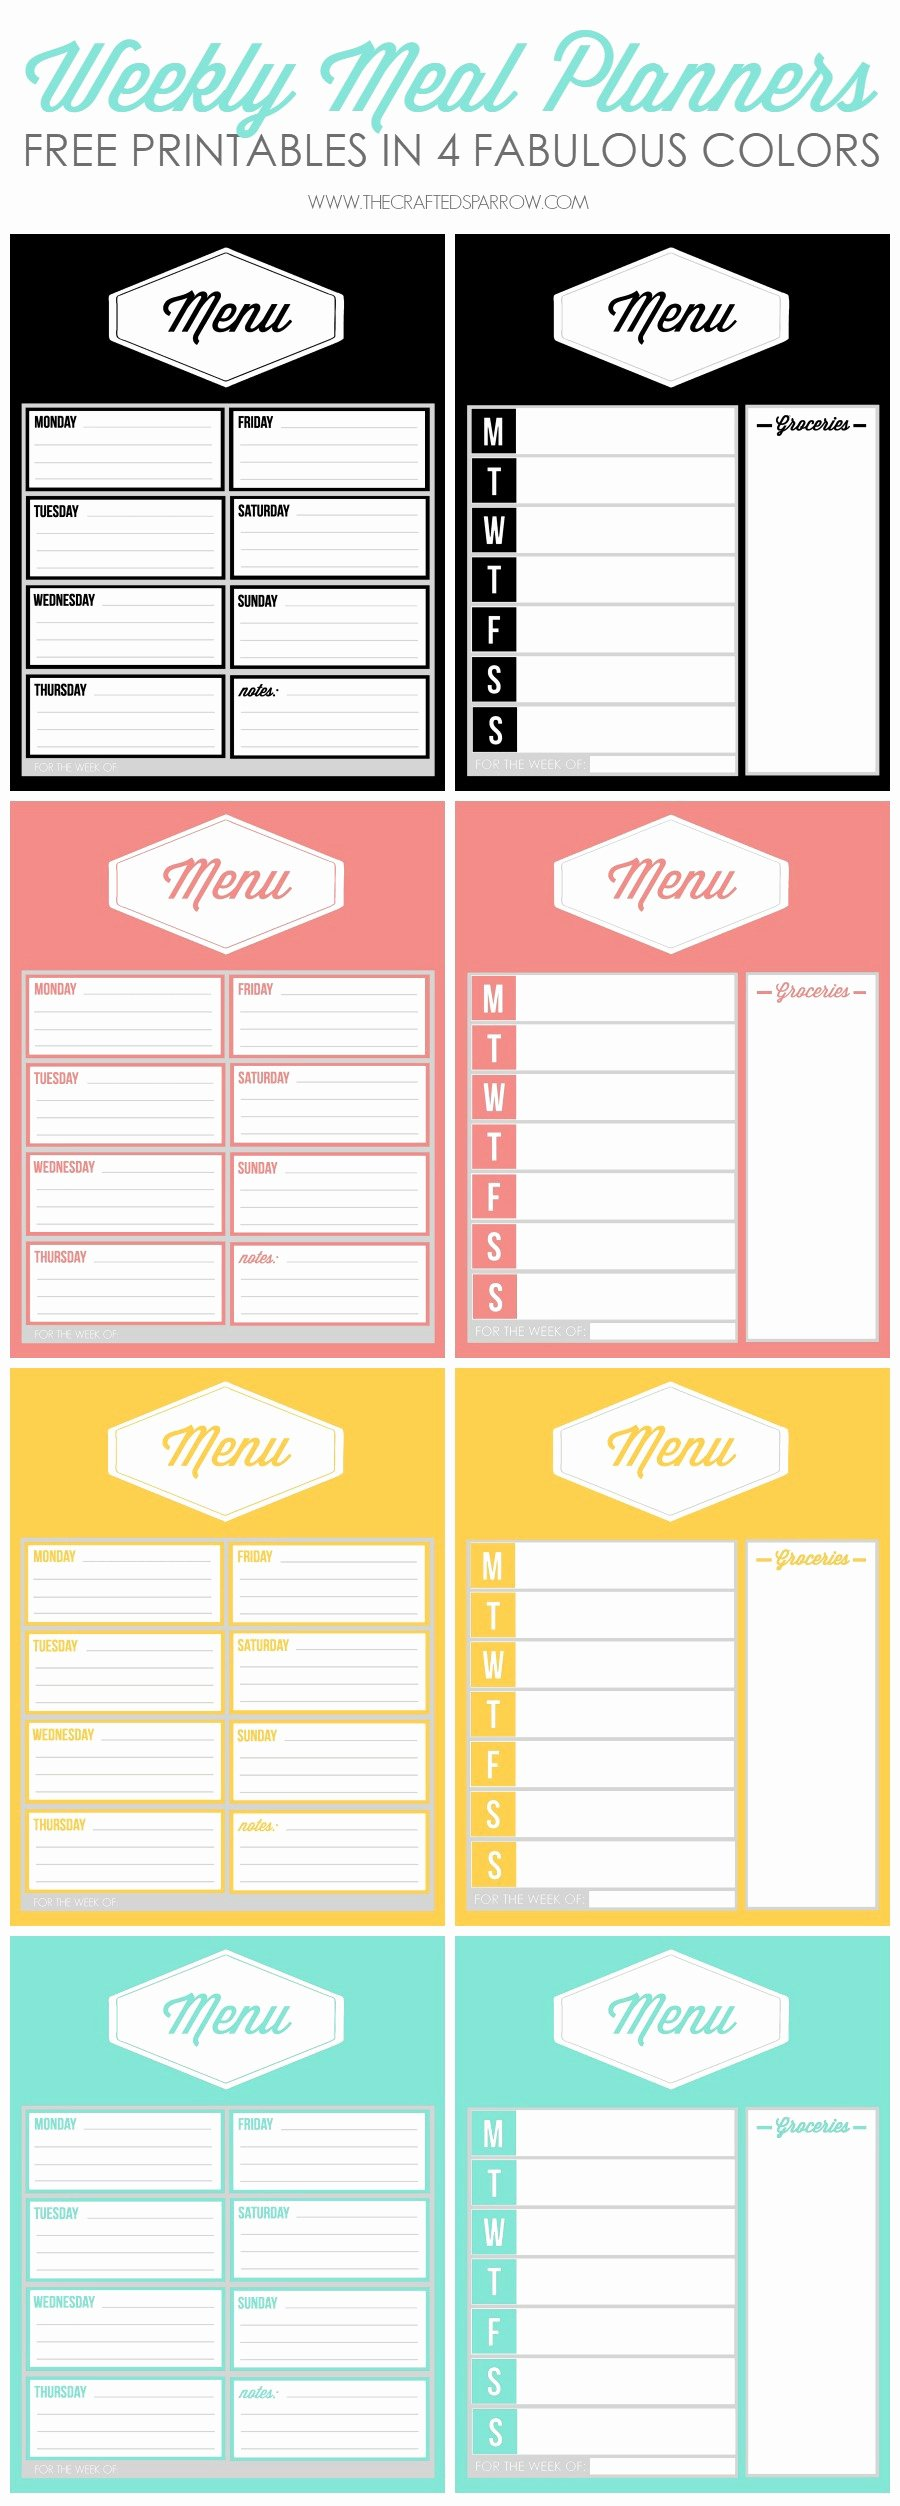 Meal Plan Template Printable Unique Free Printable Weekly Meal Planners